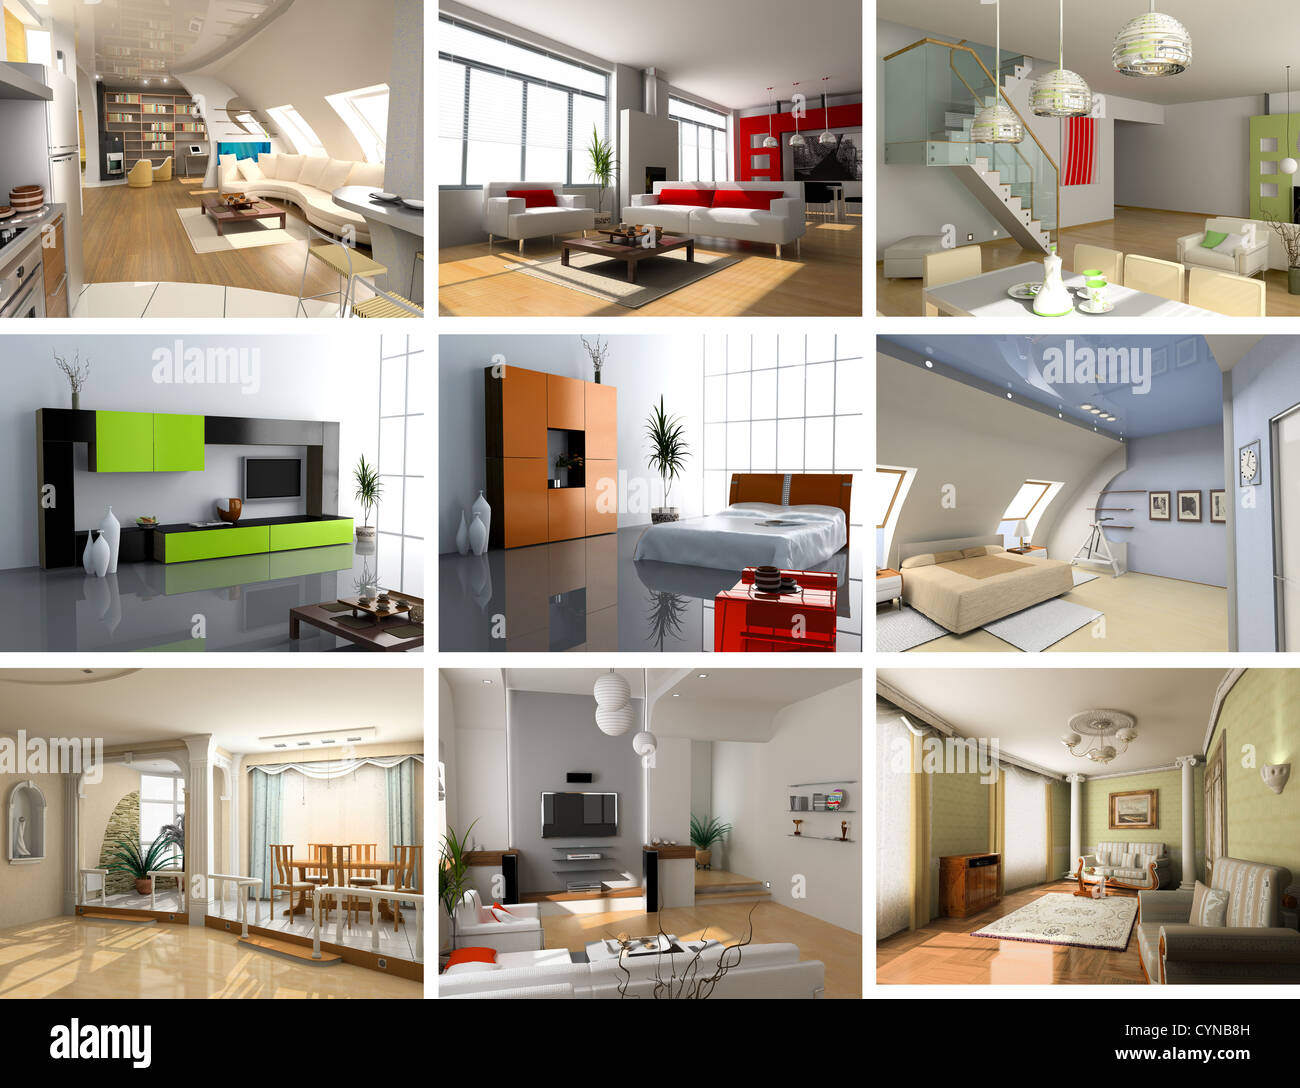 modern interiors images design set (computer generated image 3D) - Stock Image